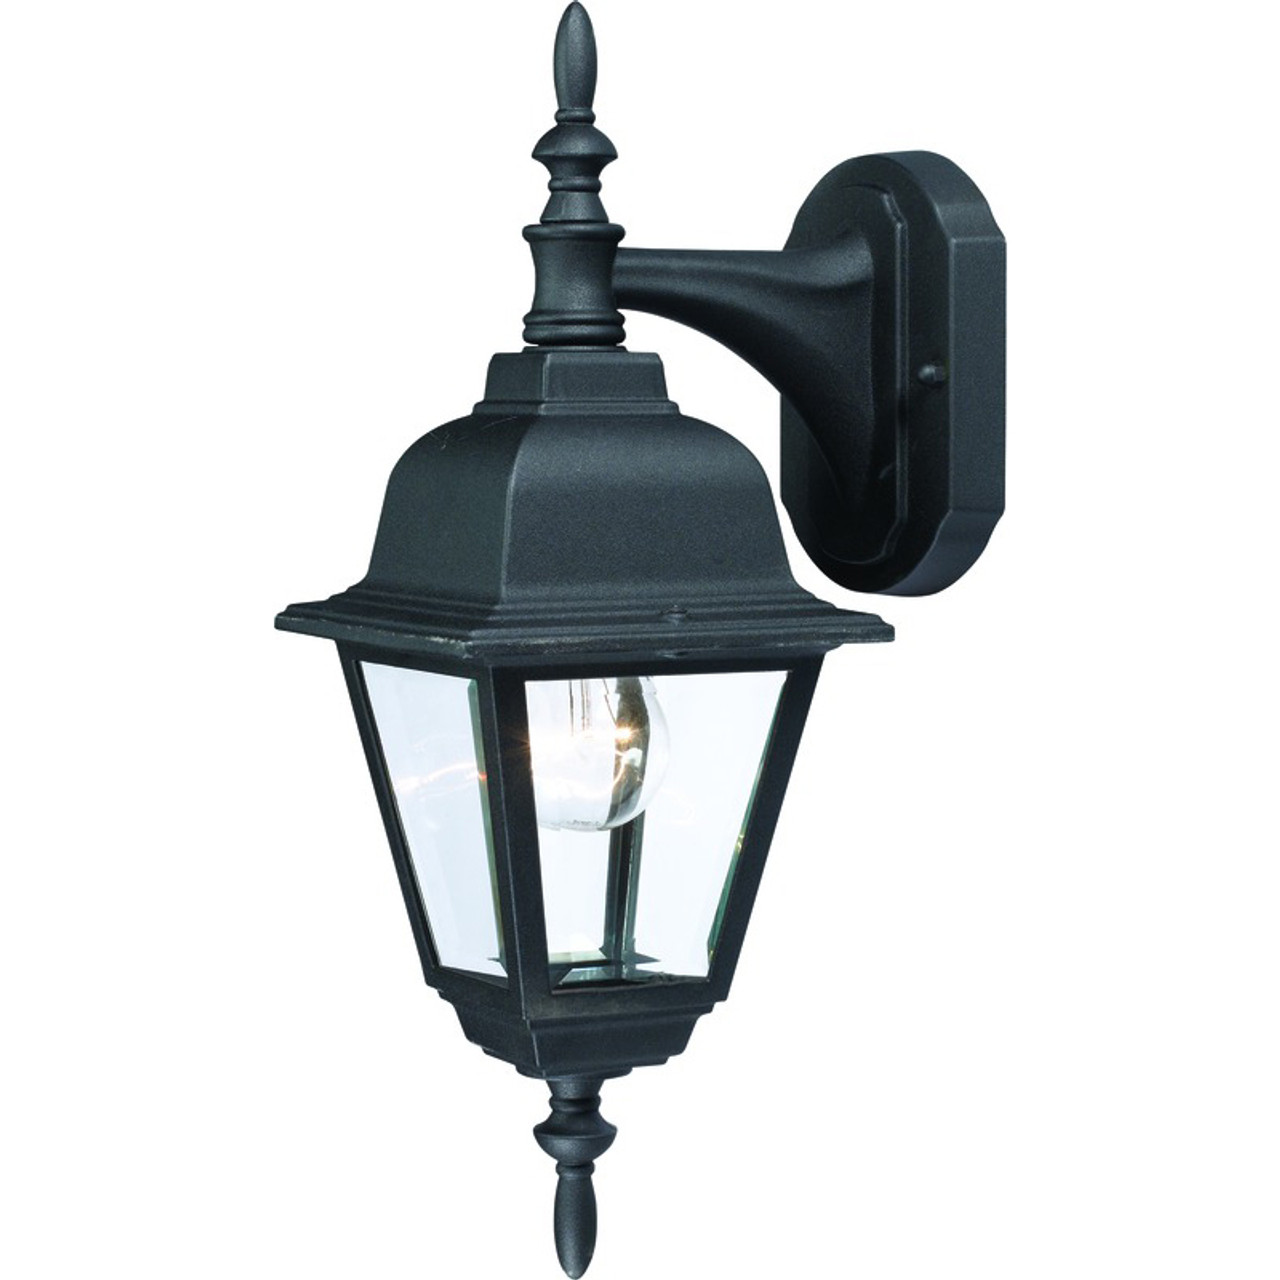 Black Outdoor Patio / Porch Exterior Light Fixture : 55-2364 ...